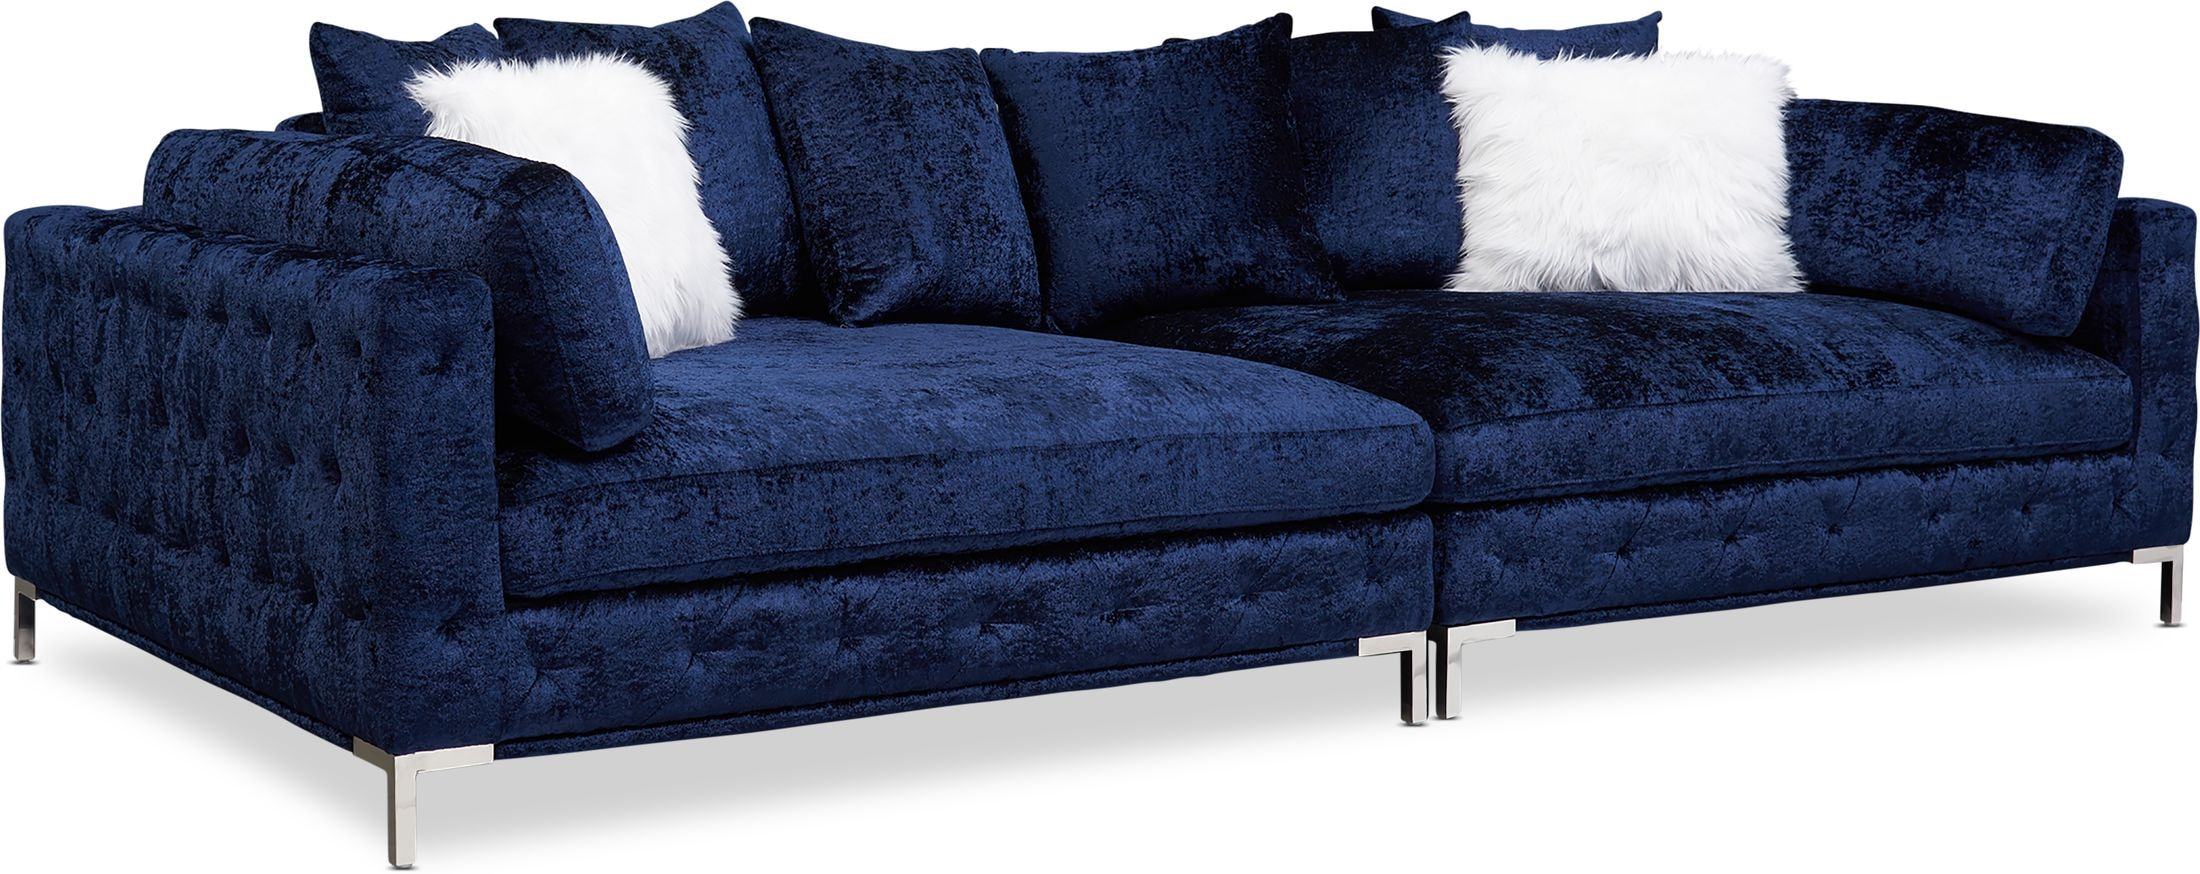 Living Room Furniture - Milan 2-Piece Sofa